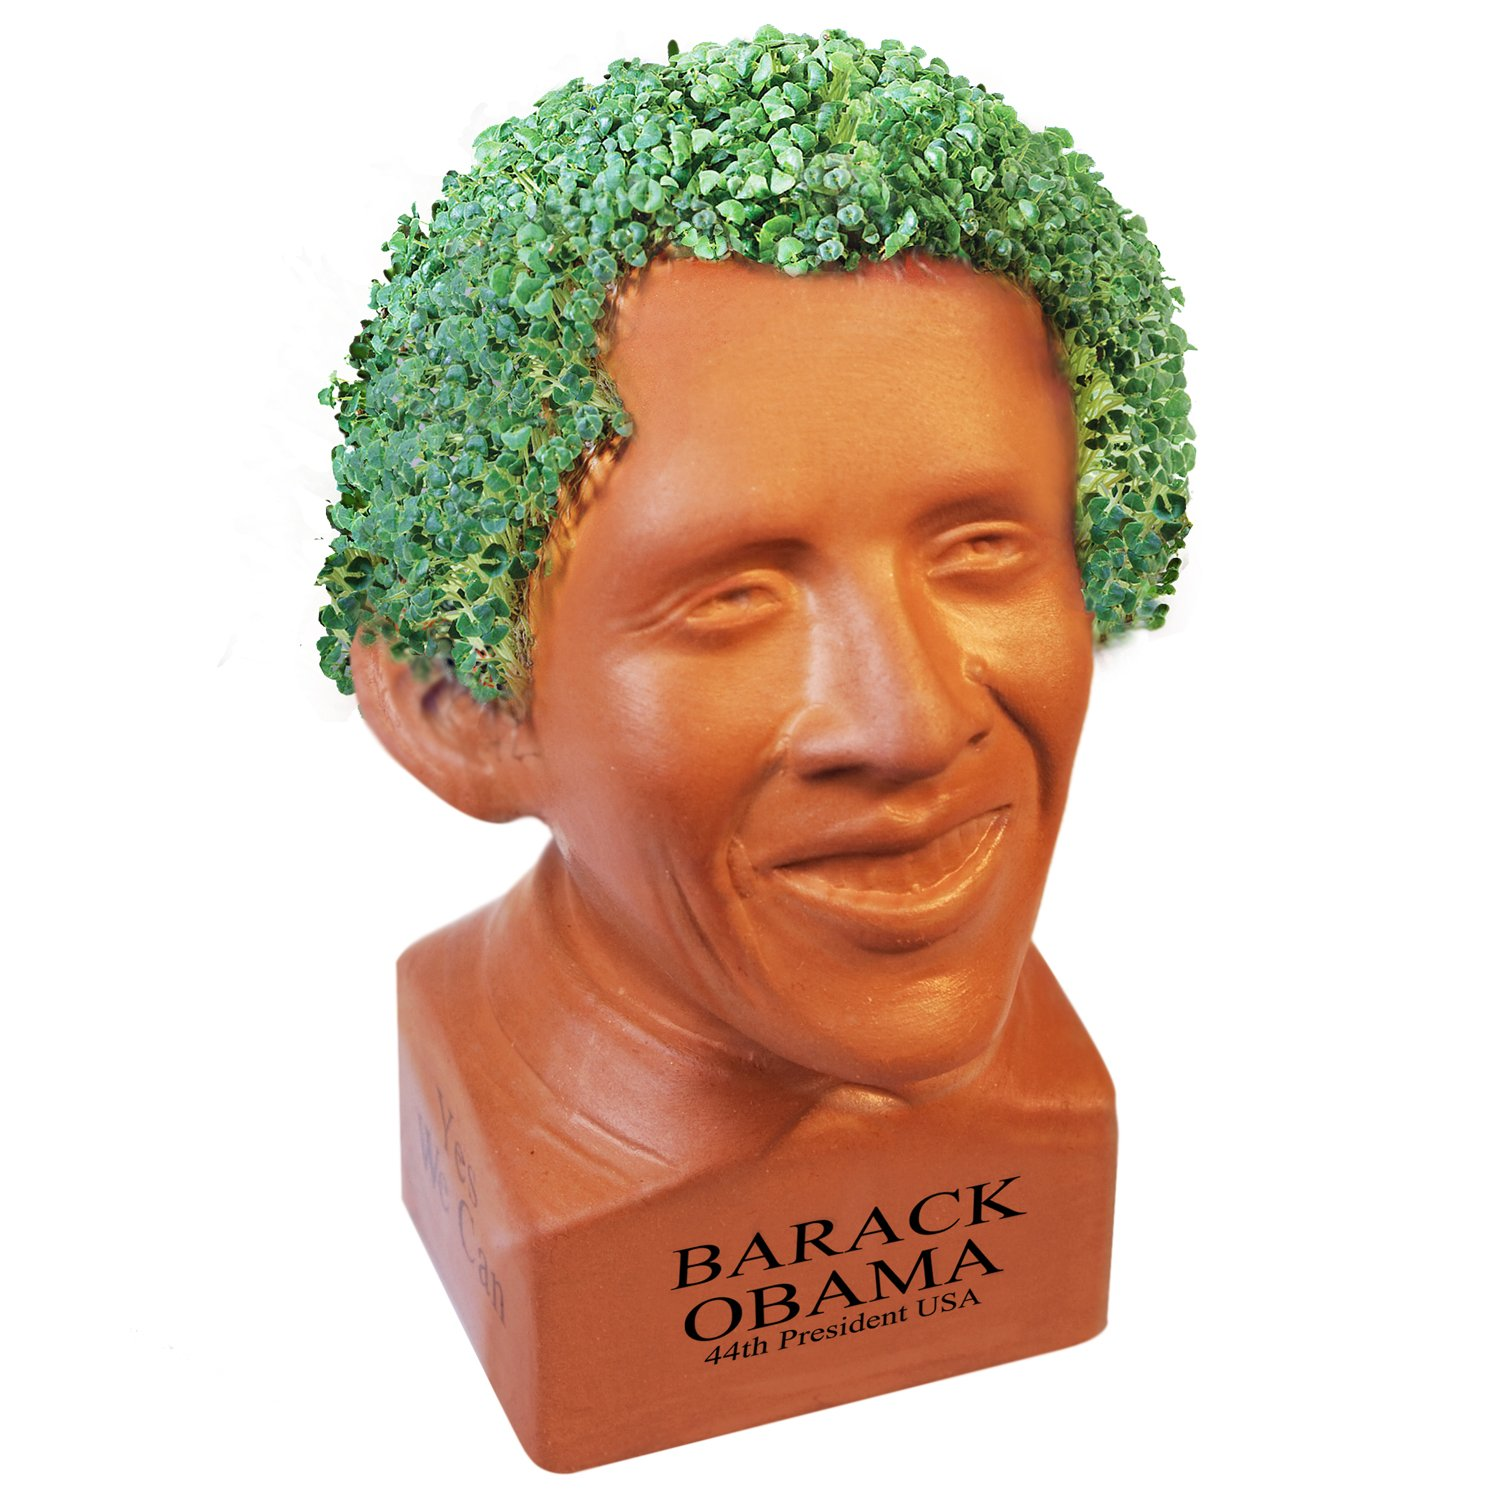 amazon com chia pet happy barack obama with seed pack, decorativeamazon com chia pet happy barack obama with seed pack, decorative pottery planter, easy to do and fun to grow, novelty gift, perfect for any occasion